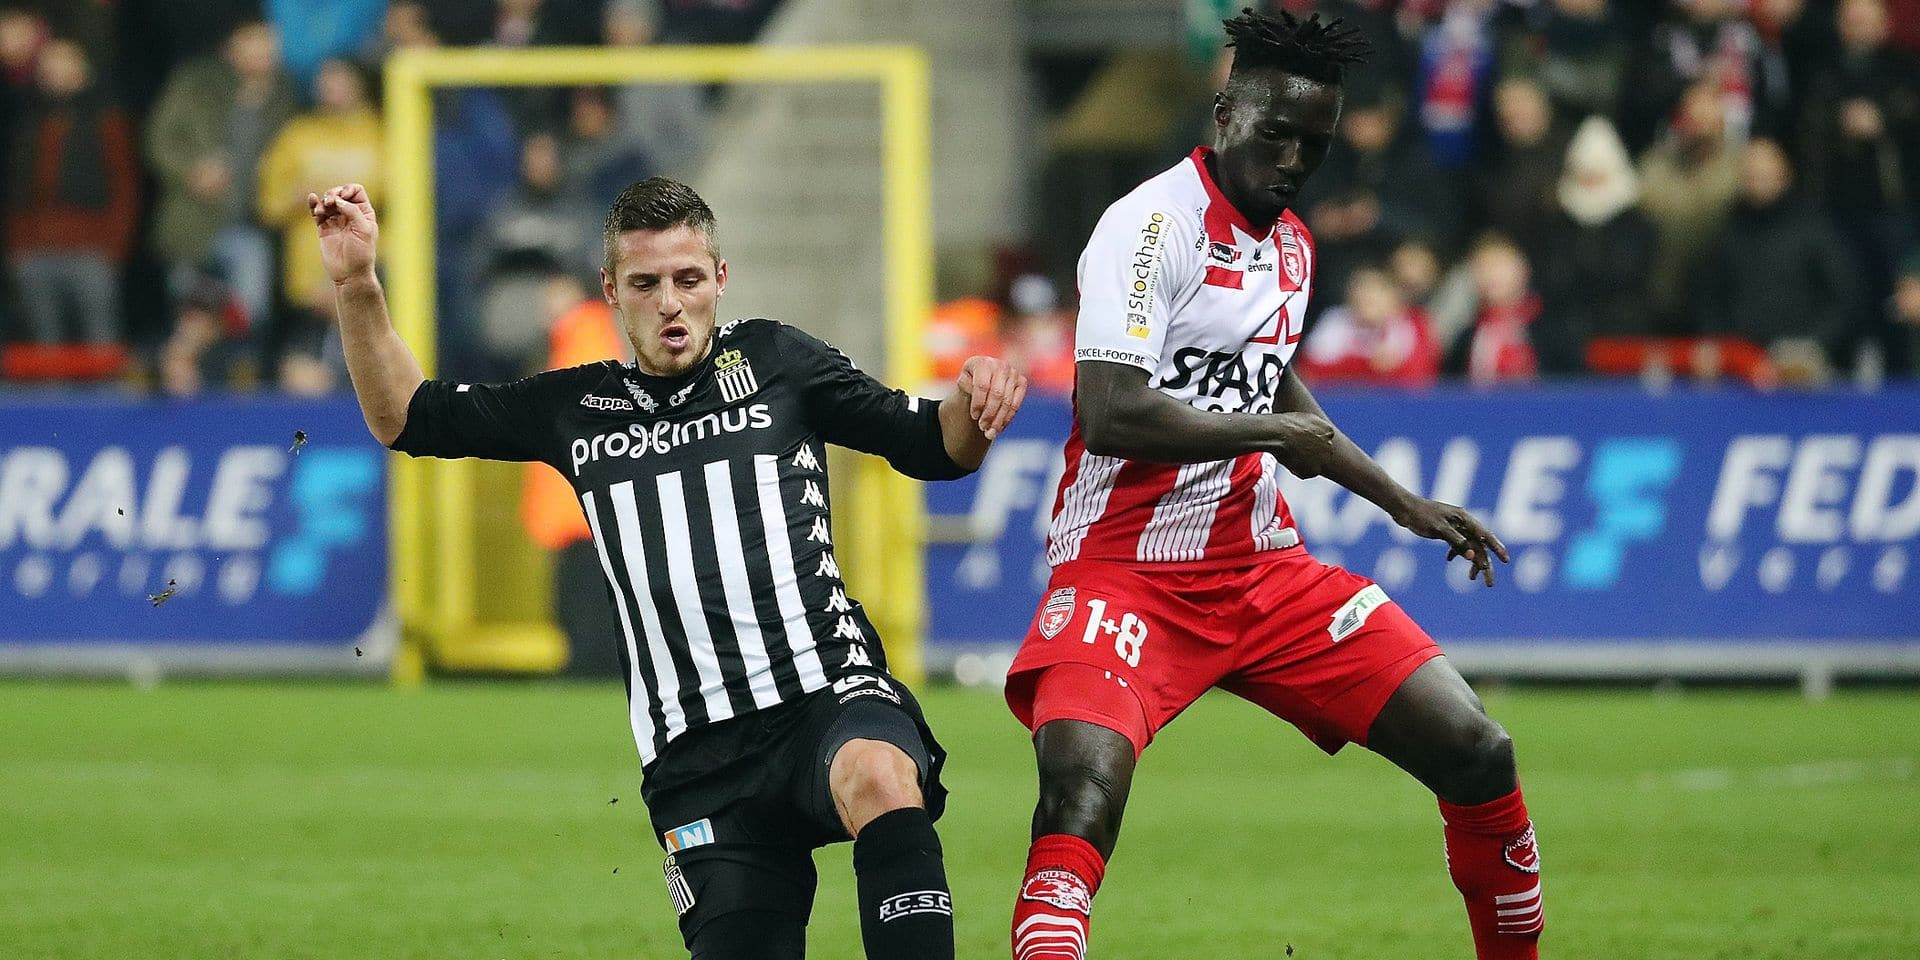 Charleroi's Steeven Willems and Mouscron's Mbaye Leye fight for the ball during a soccer match between Royal Excel Mouscron and Sporting Charleroi, Friday 01 February 2019 in Mouscron, on day 24th of the 'Jupiler Pro League' Belgian soccer championship season 2018-2019. BELGA PHOTO VIRGINIE LEFOUR